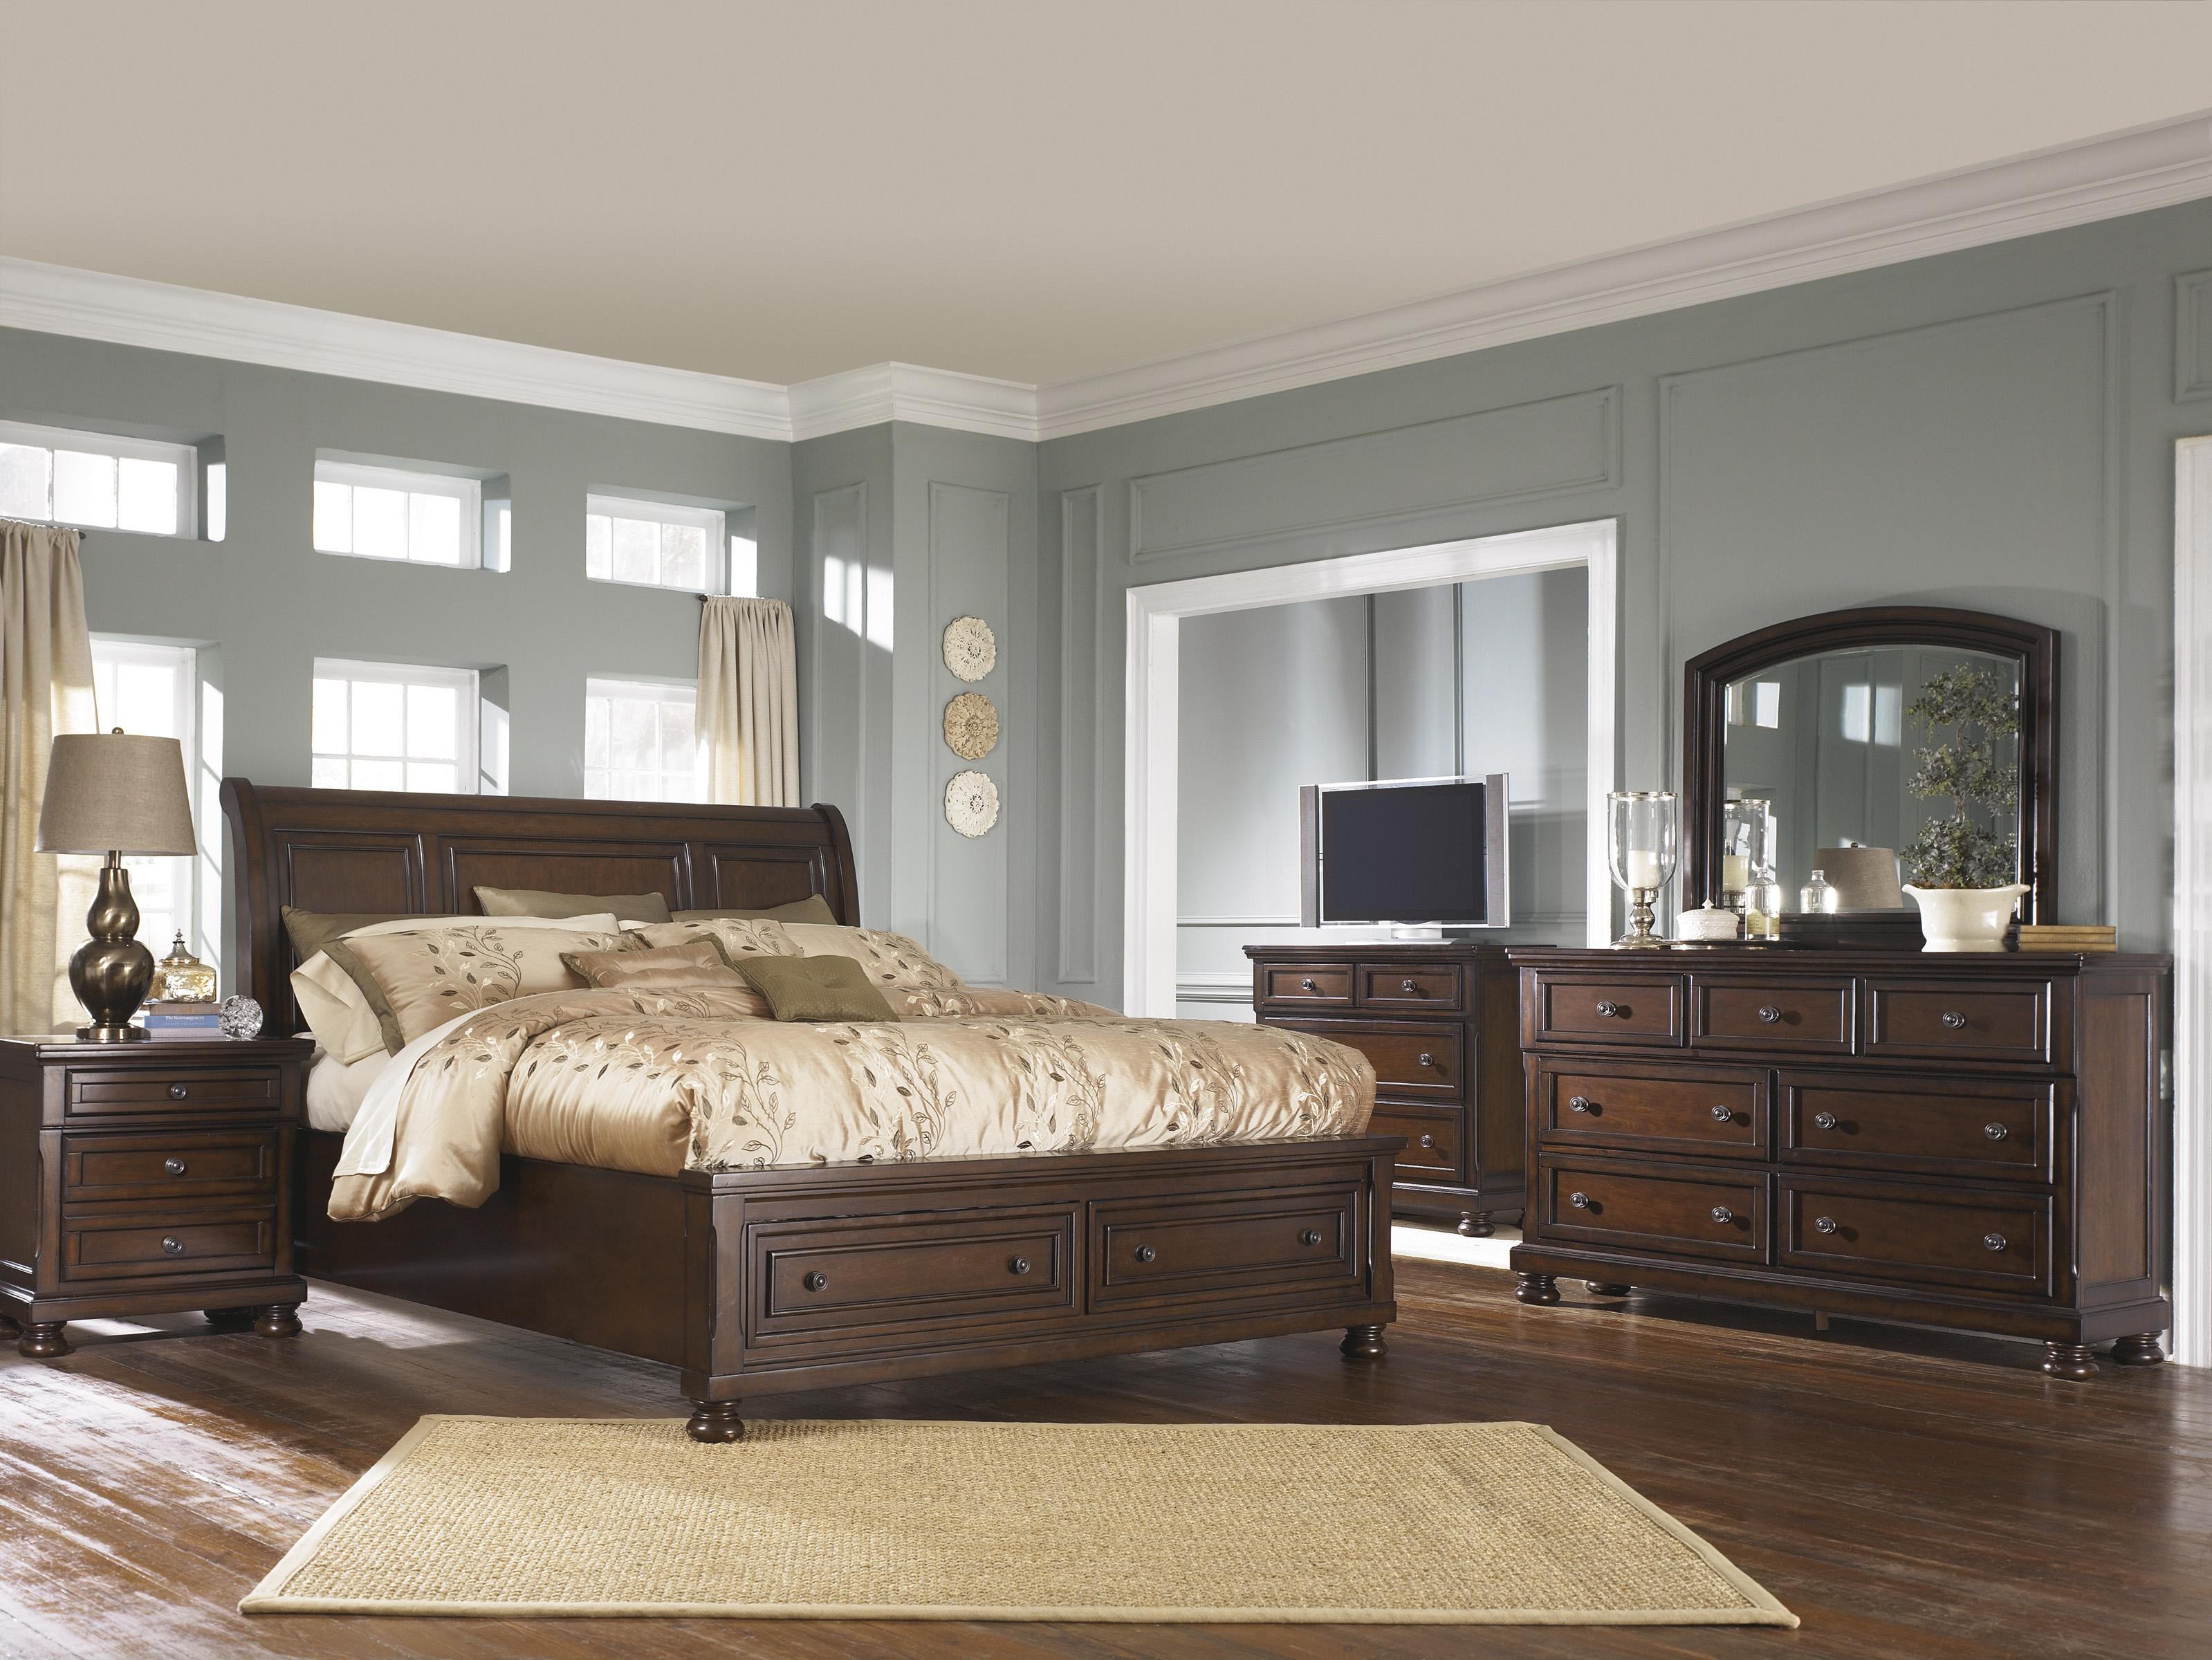 Ashley Furniture Porter Queen Bedroom Group Becker Furniture World Bedroo